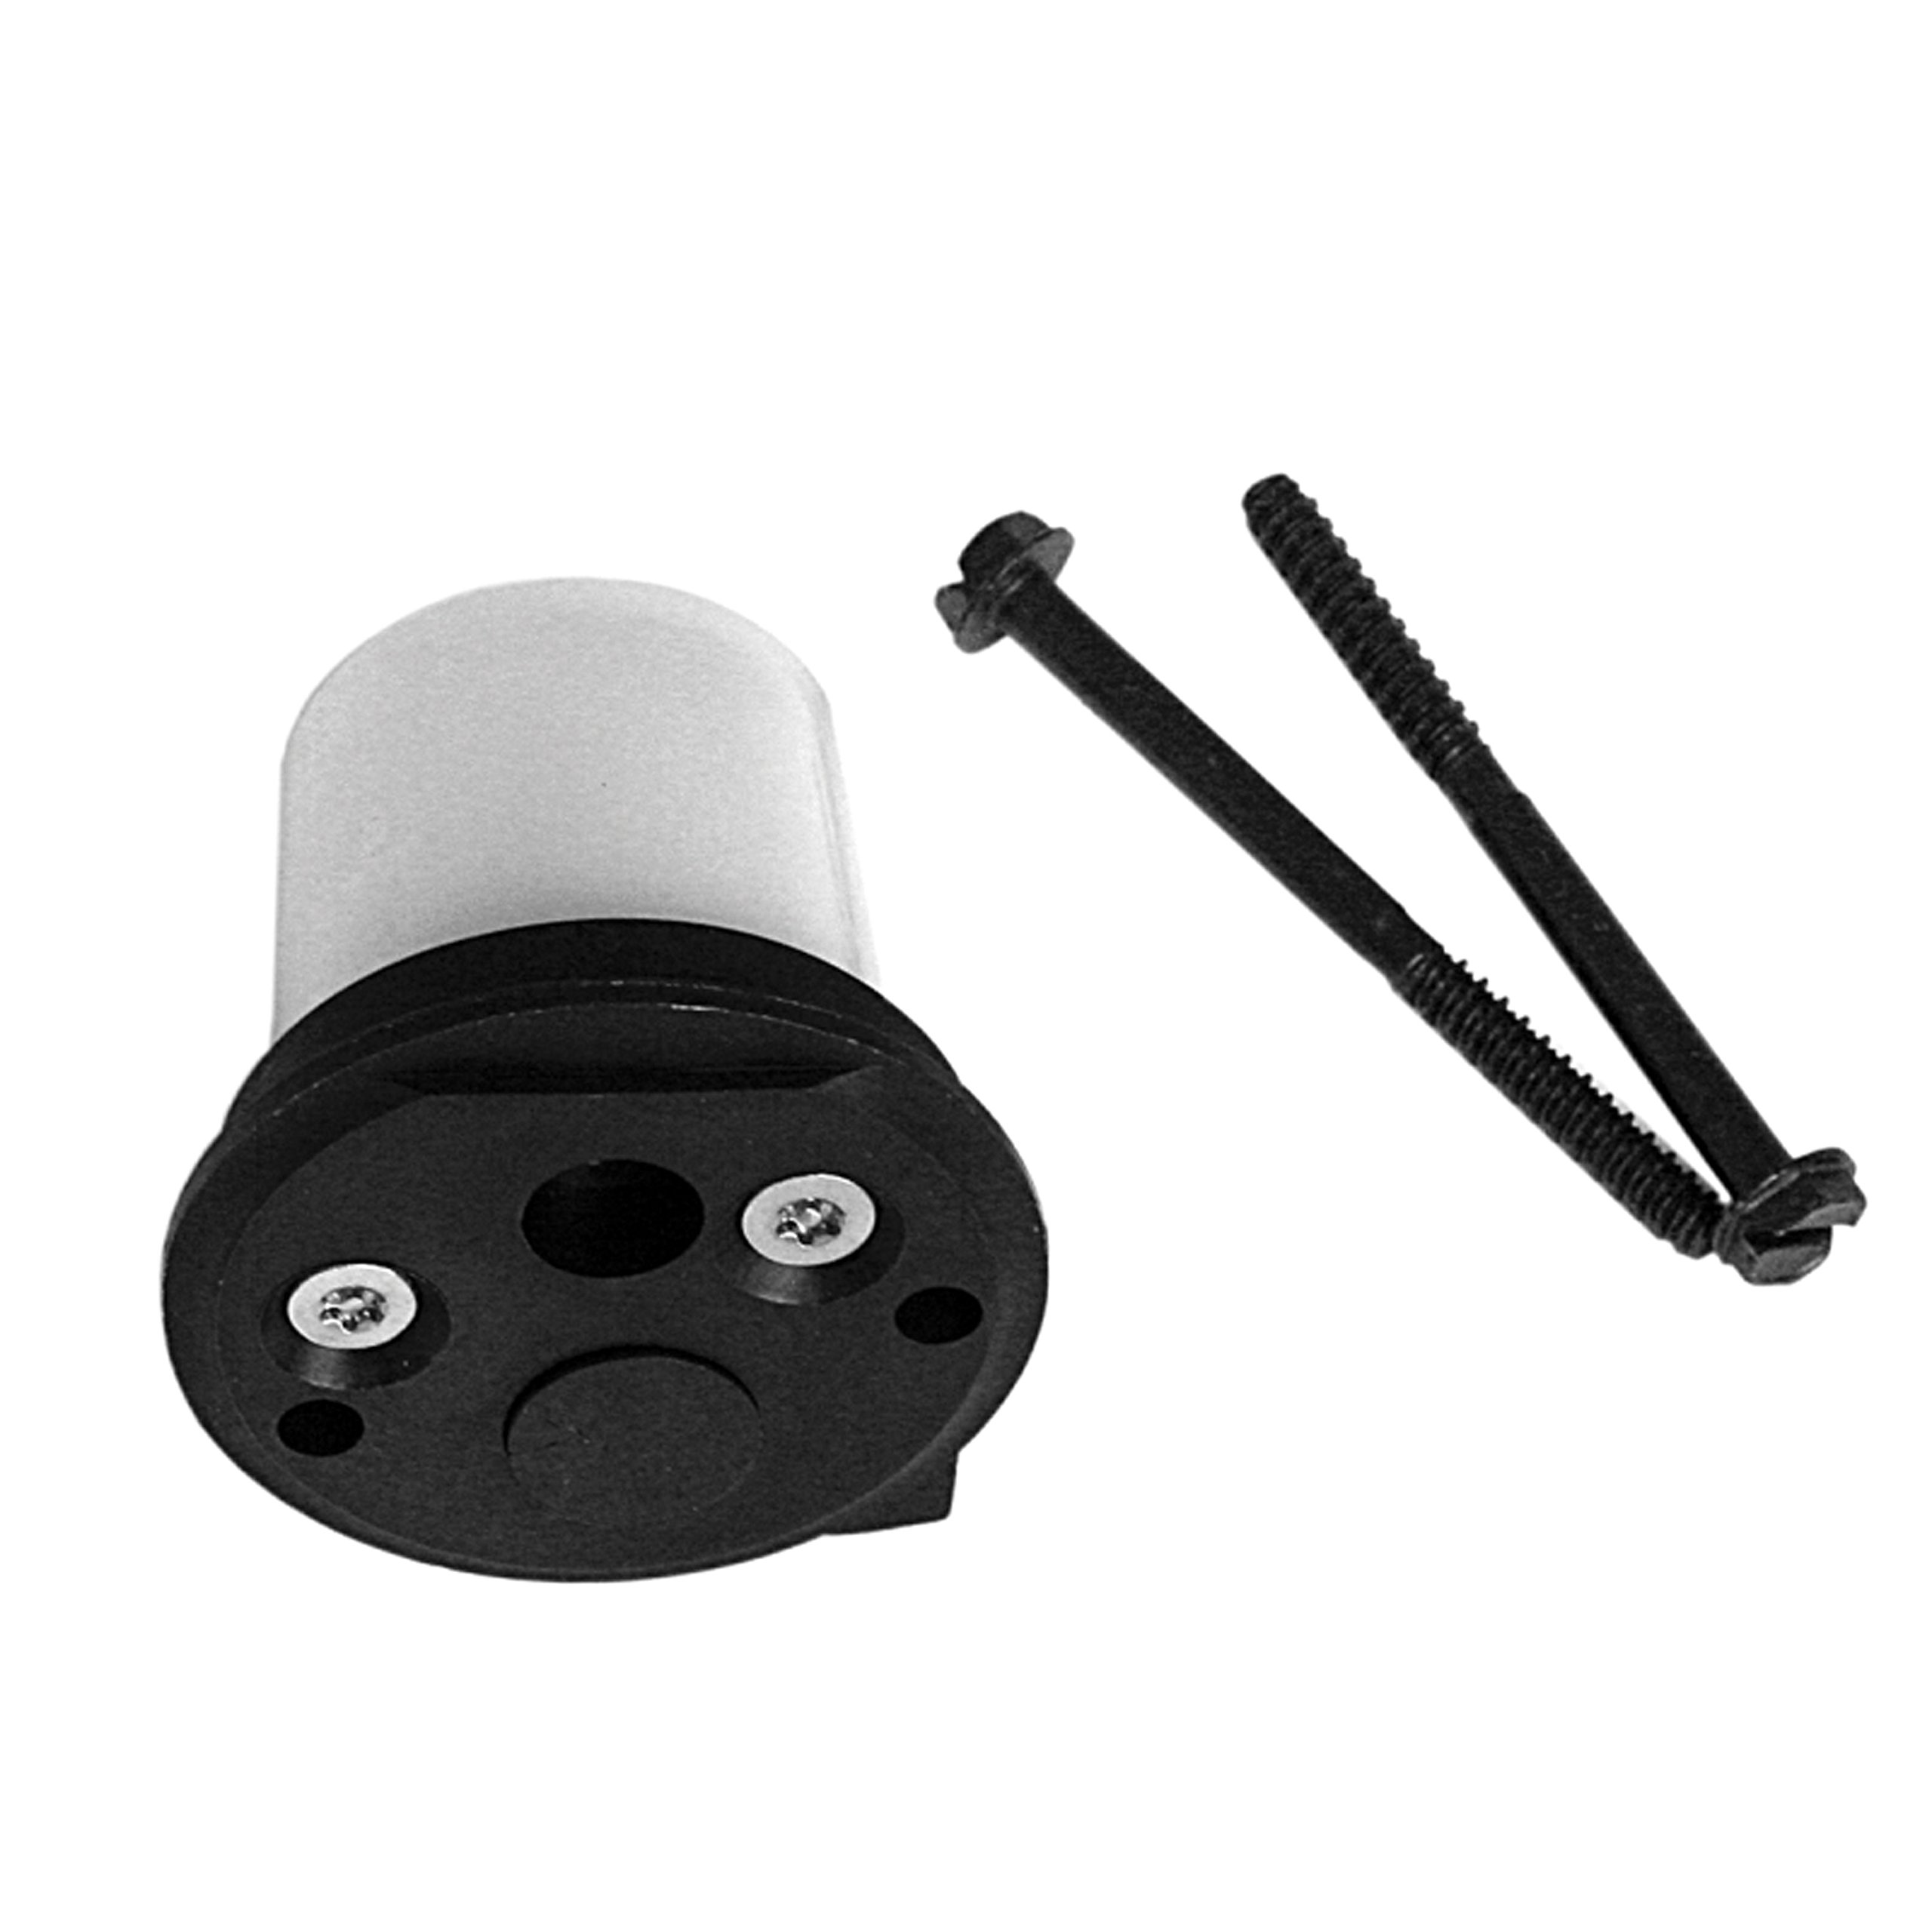 Dometic 385310683 Spring Cartridge Kit for 110 and 210 Series RV Toilets by Dometic